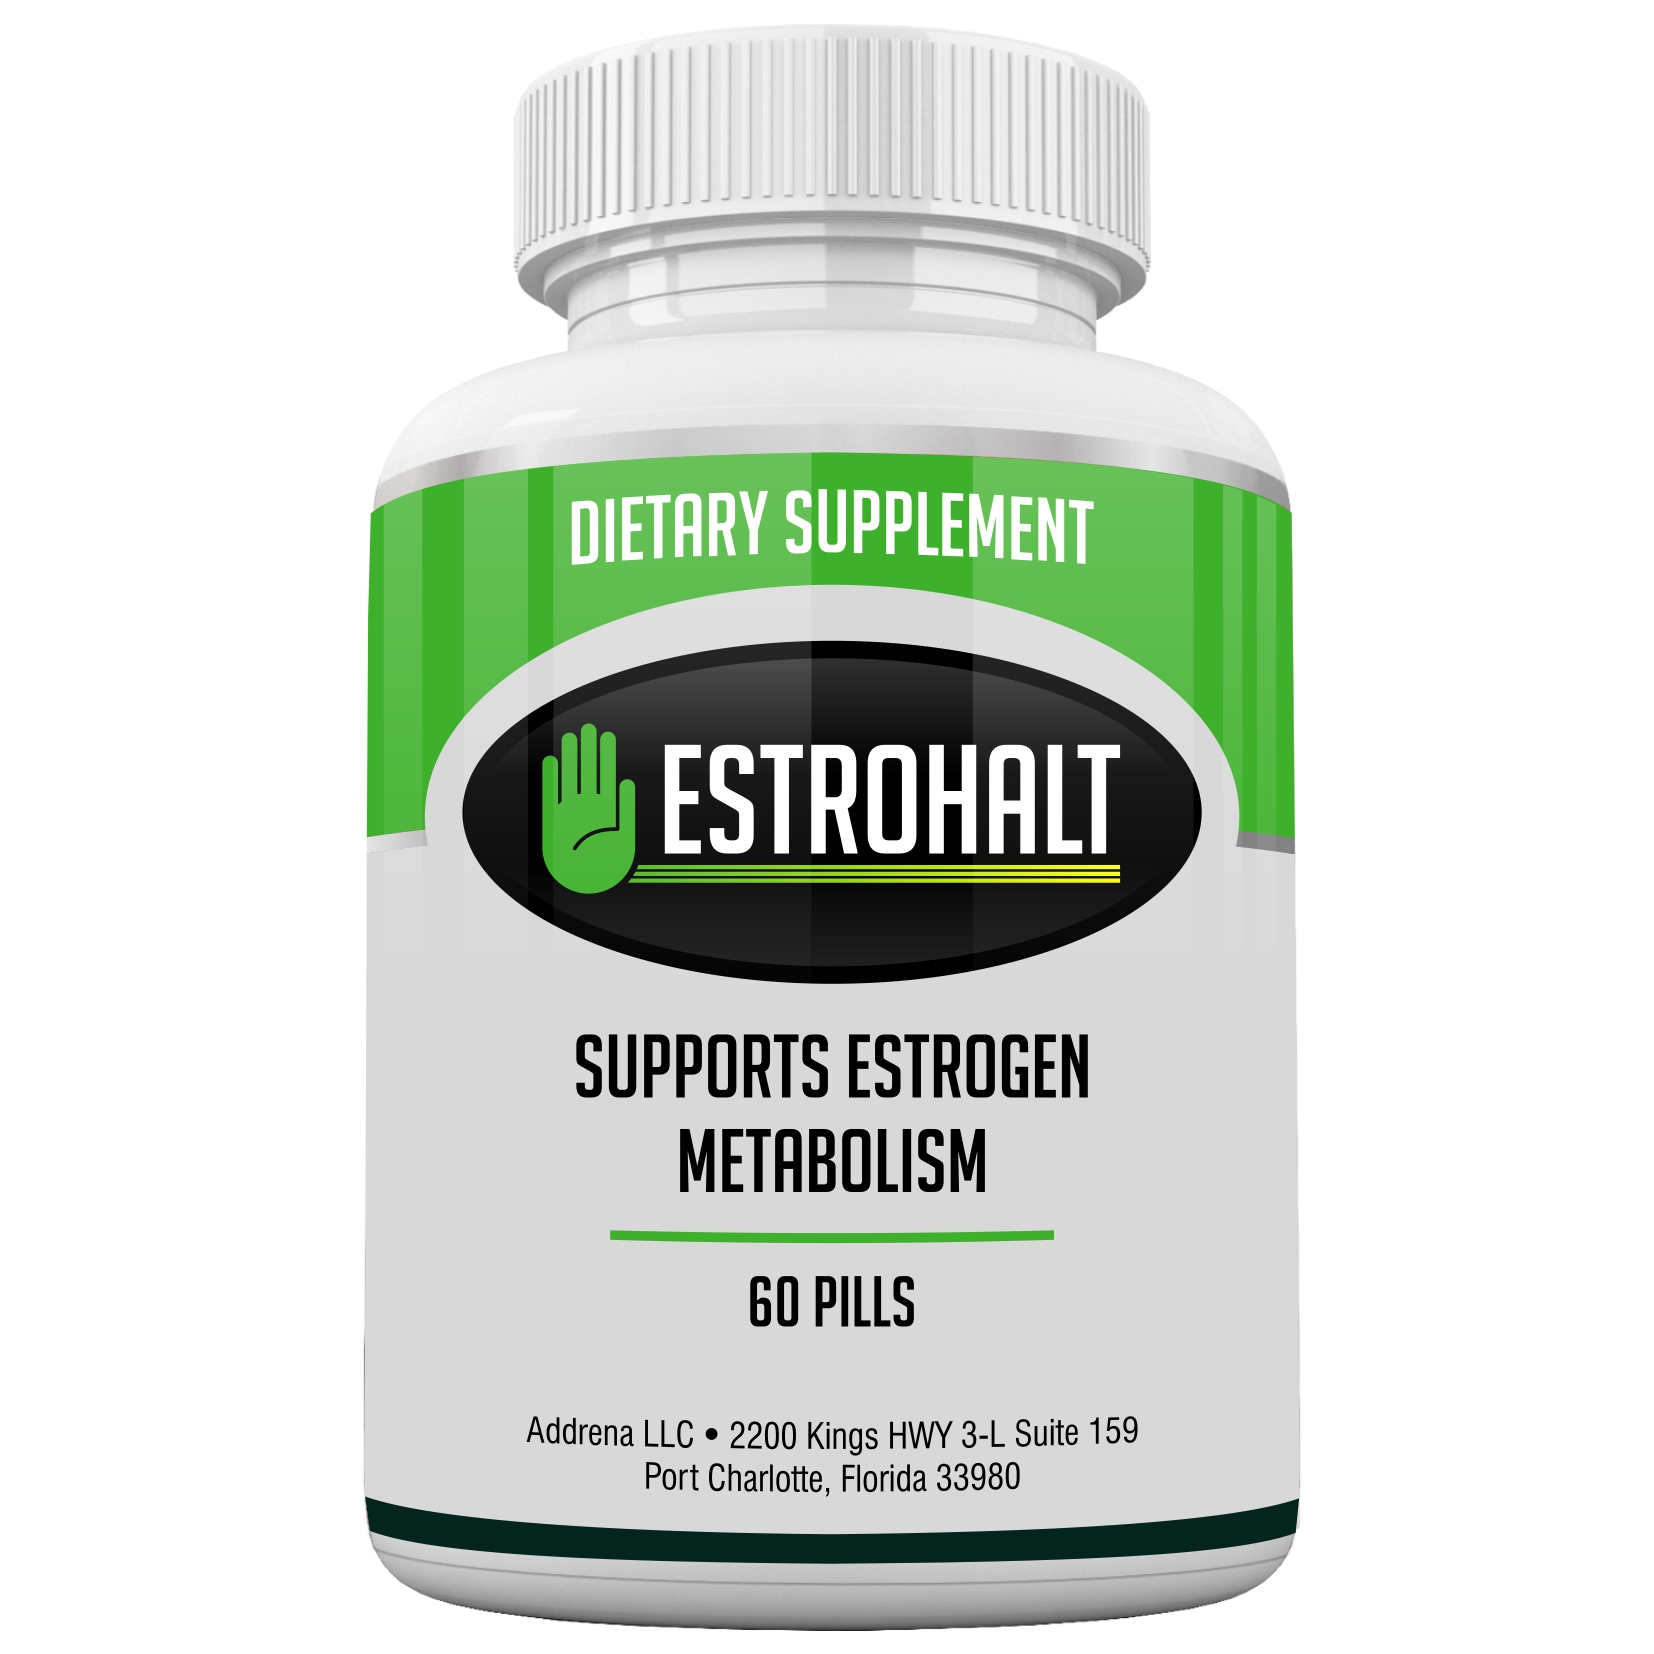 Estrohalt- Estrogen Blocker Pills for Women and Men with DIM and Indole-3-Carbinol | Natural Aromatase Inhibitor Vitamin Supplements to Decrease Female Hormones to Help PCOS, Menopause, and More